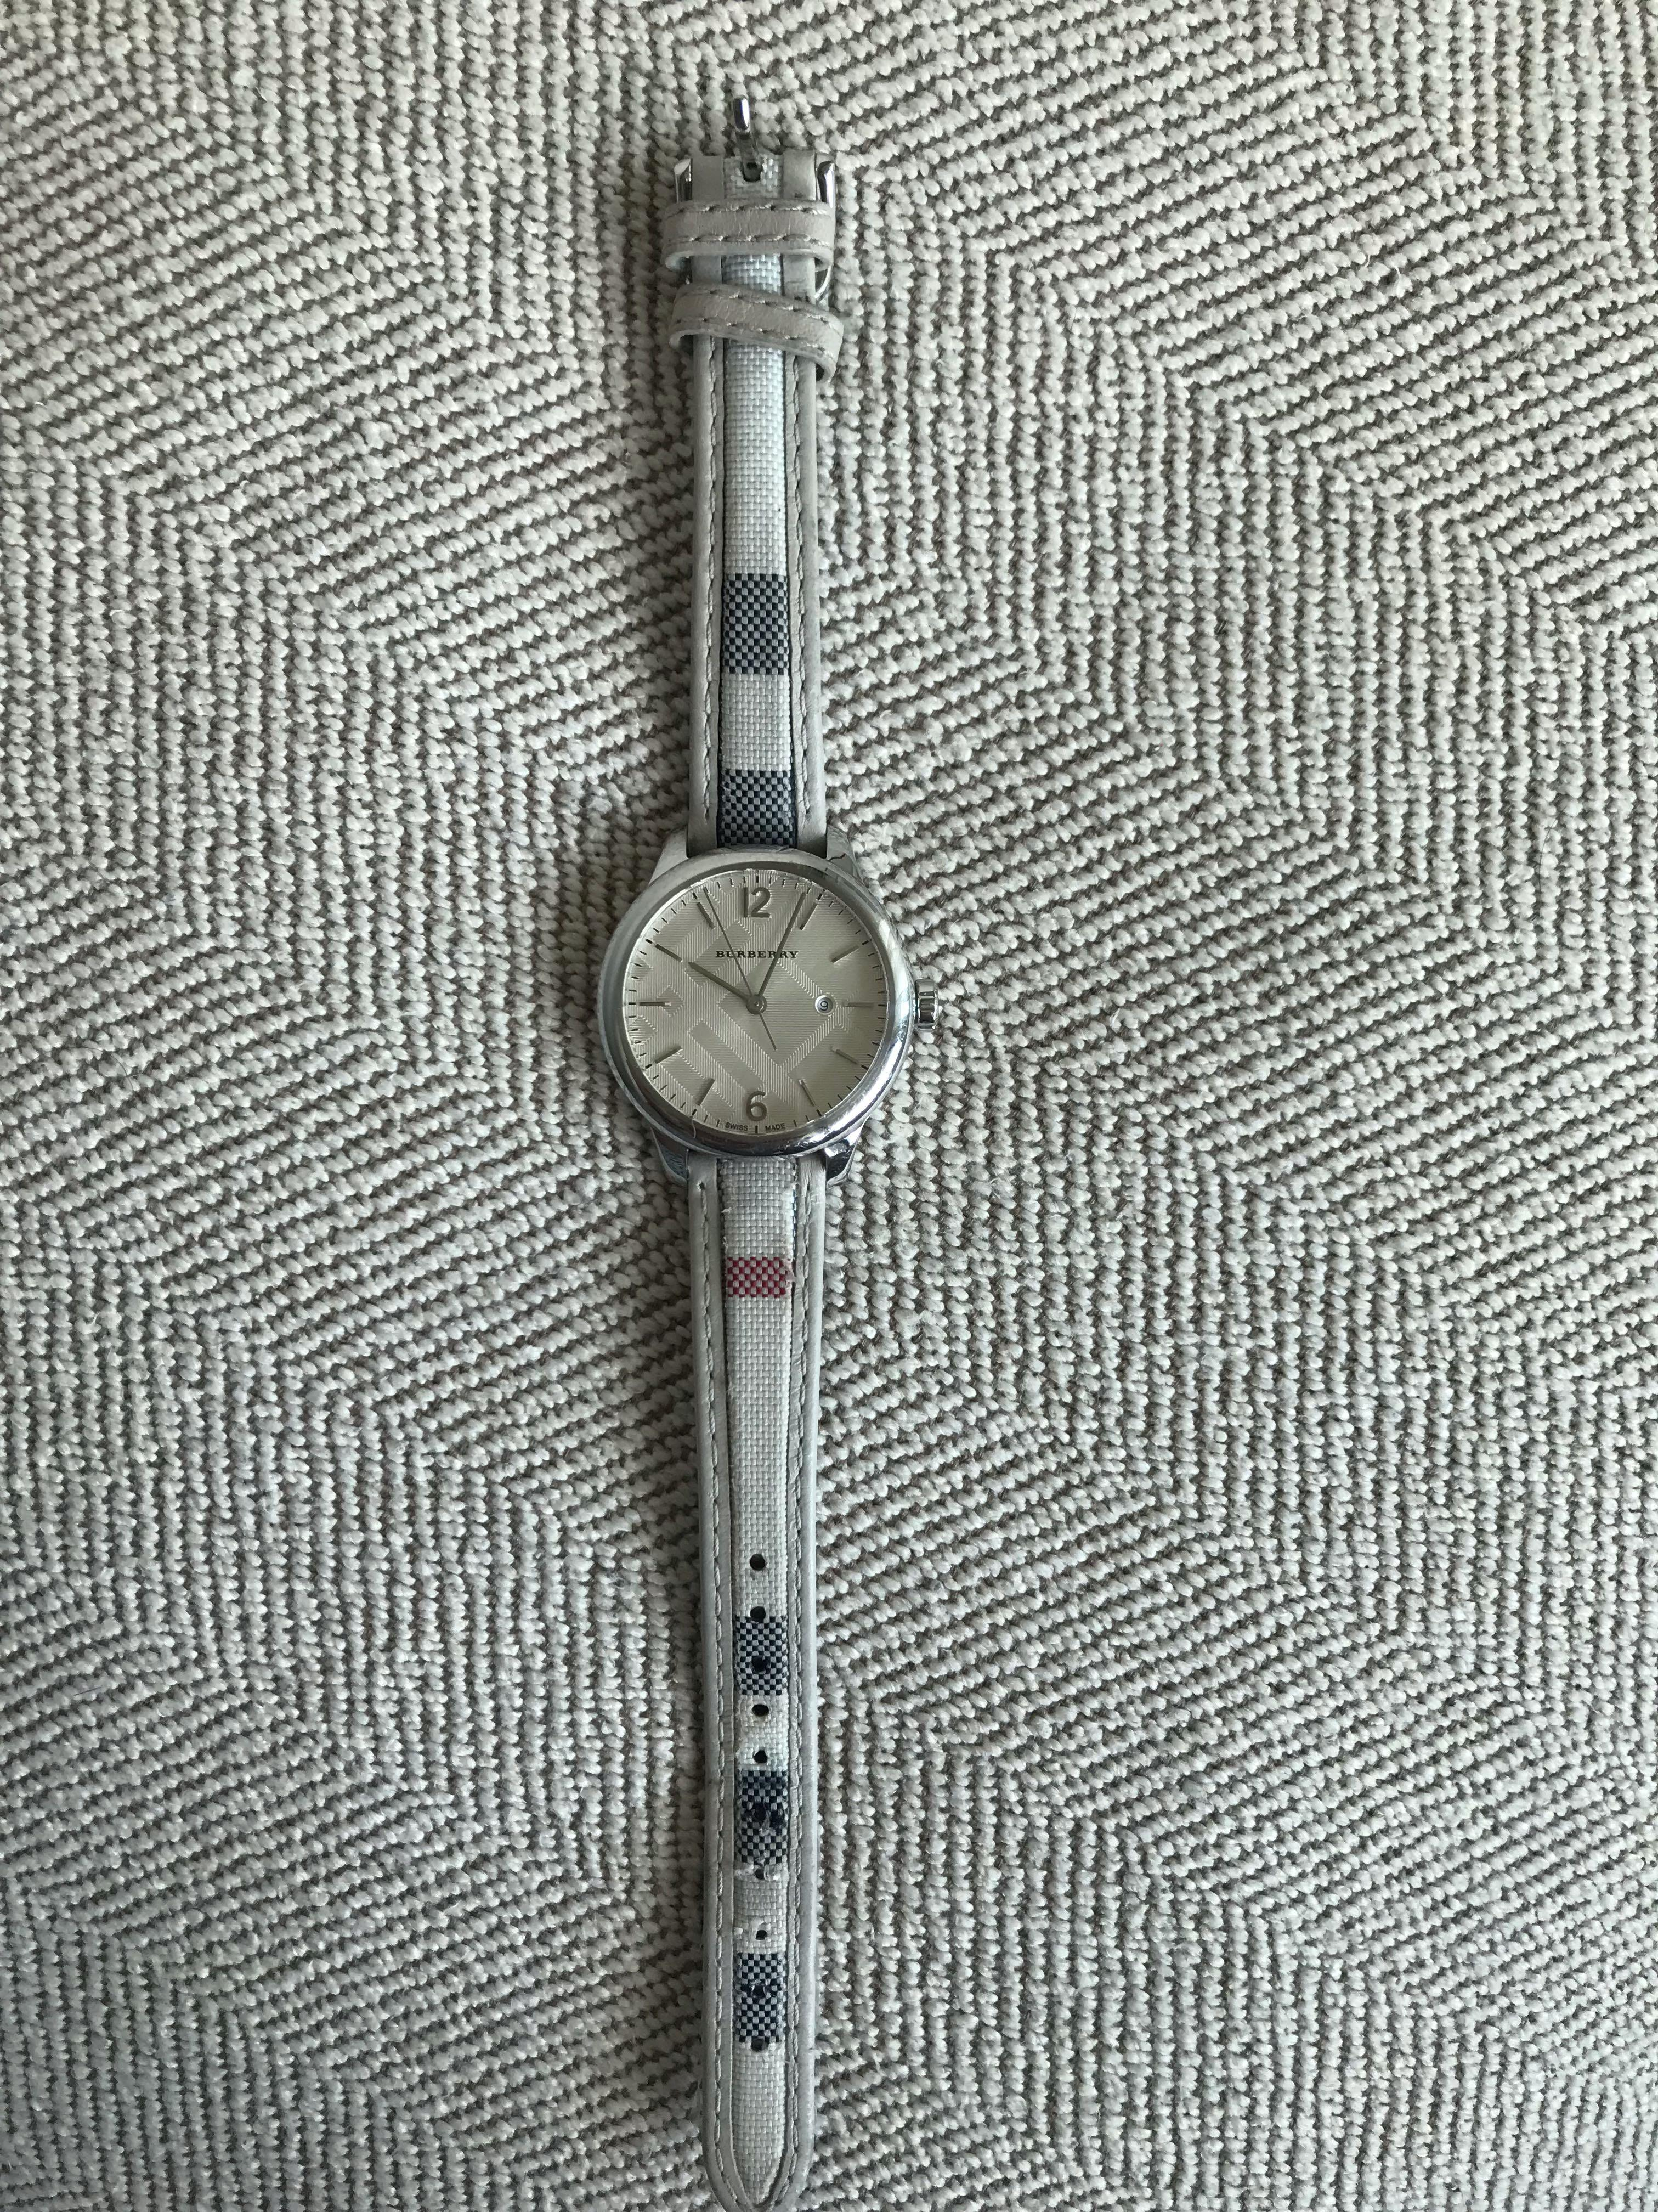 Authentic Burberry watch with classic check leather band